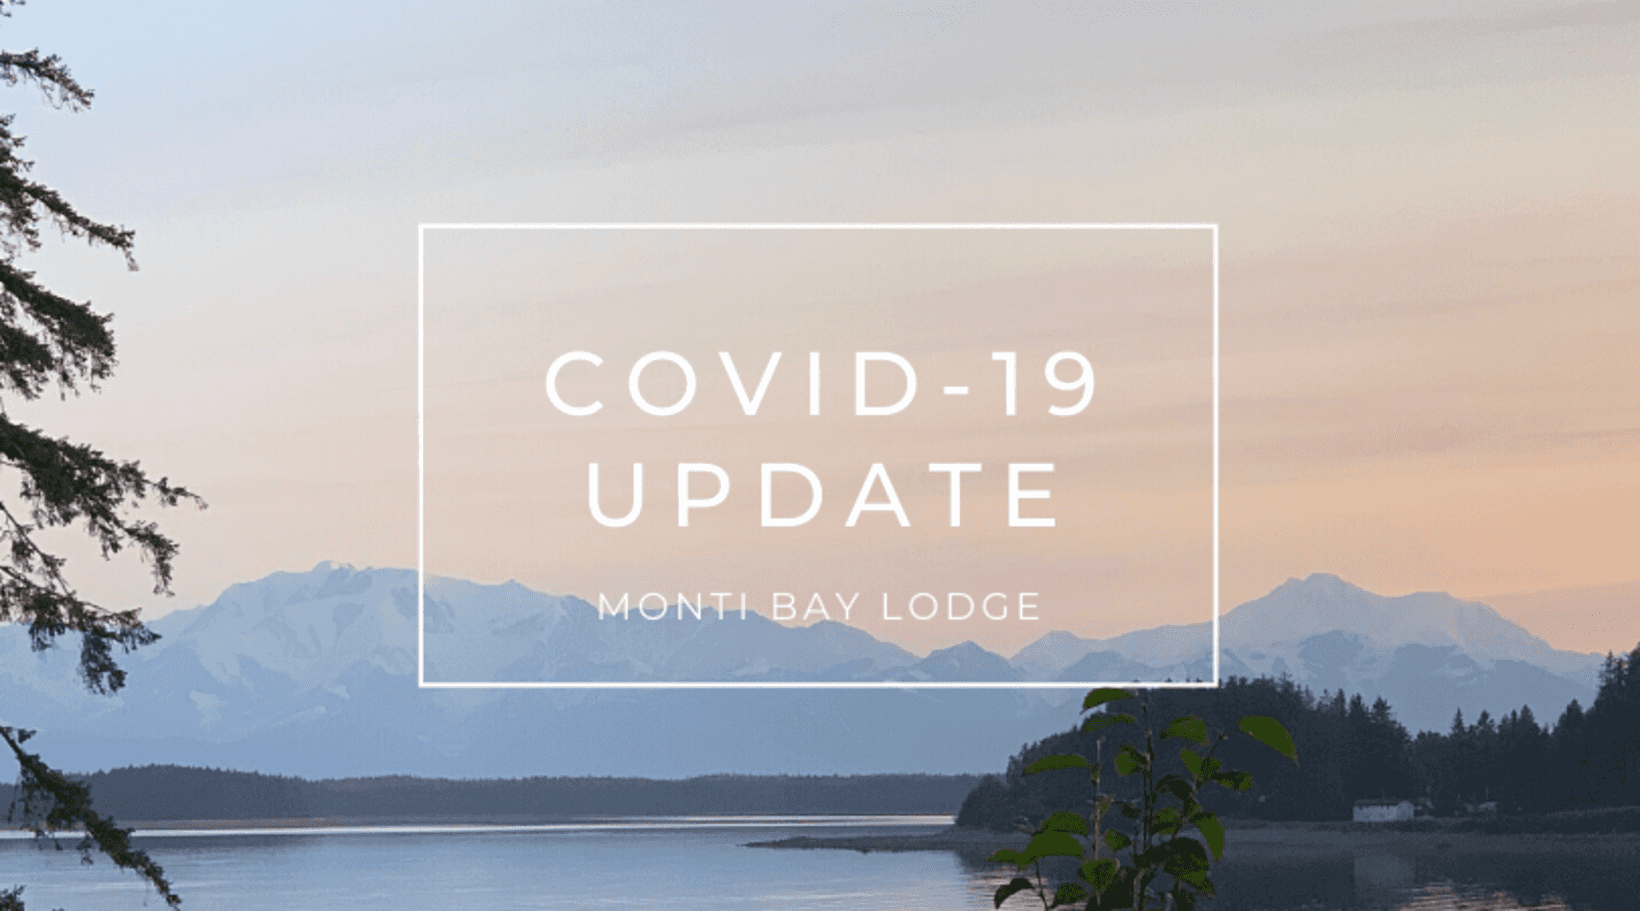 Covid-19 Update May 16th 2020